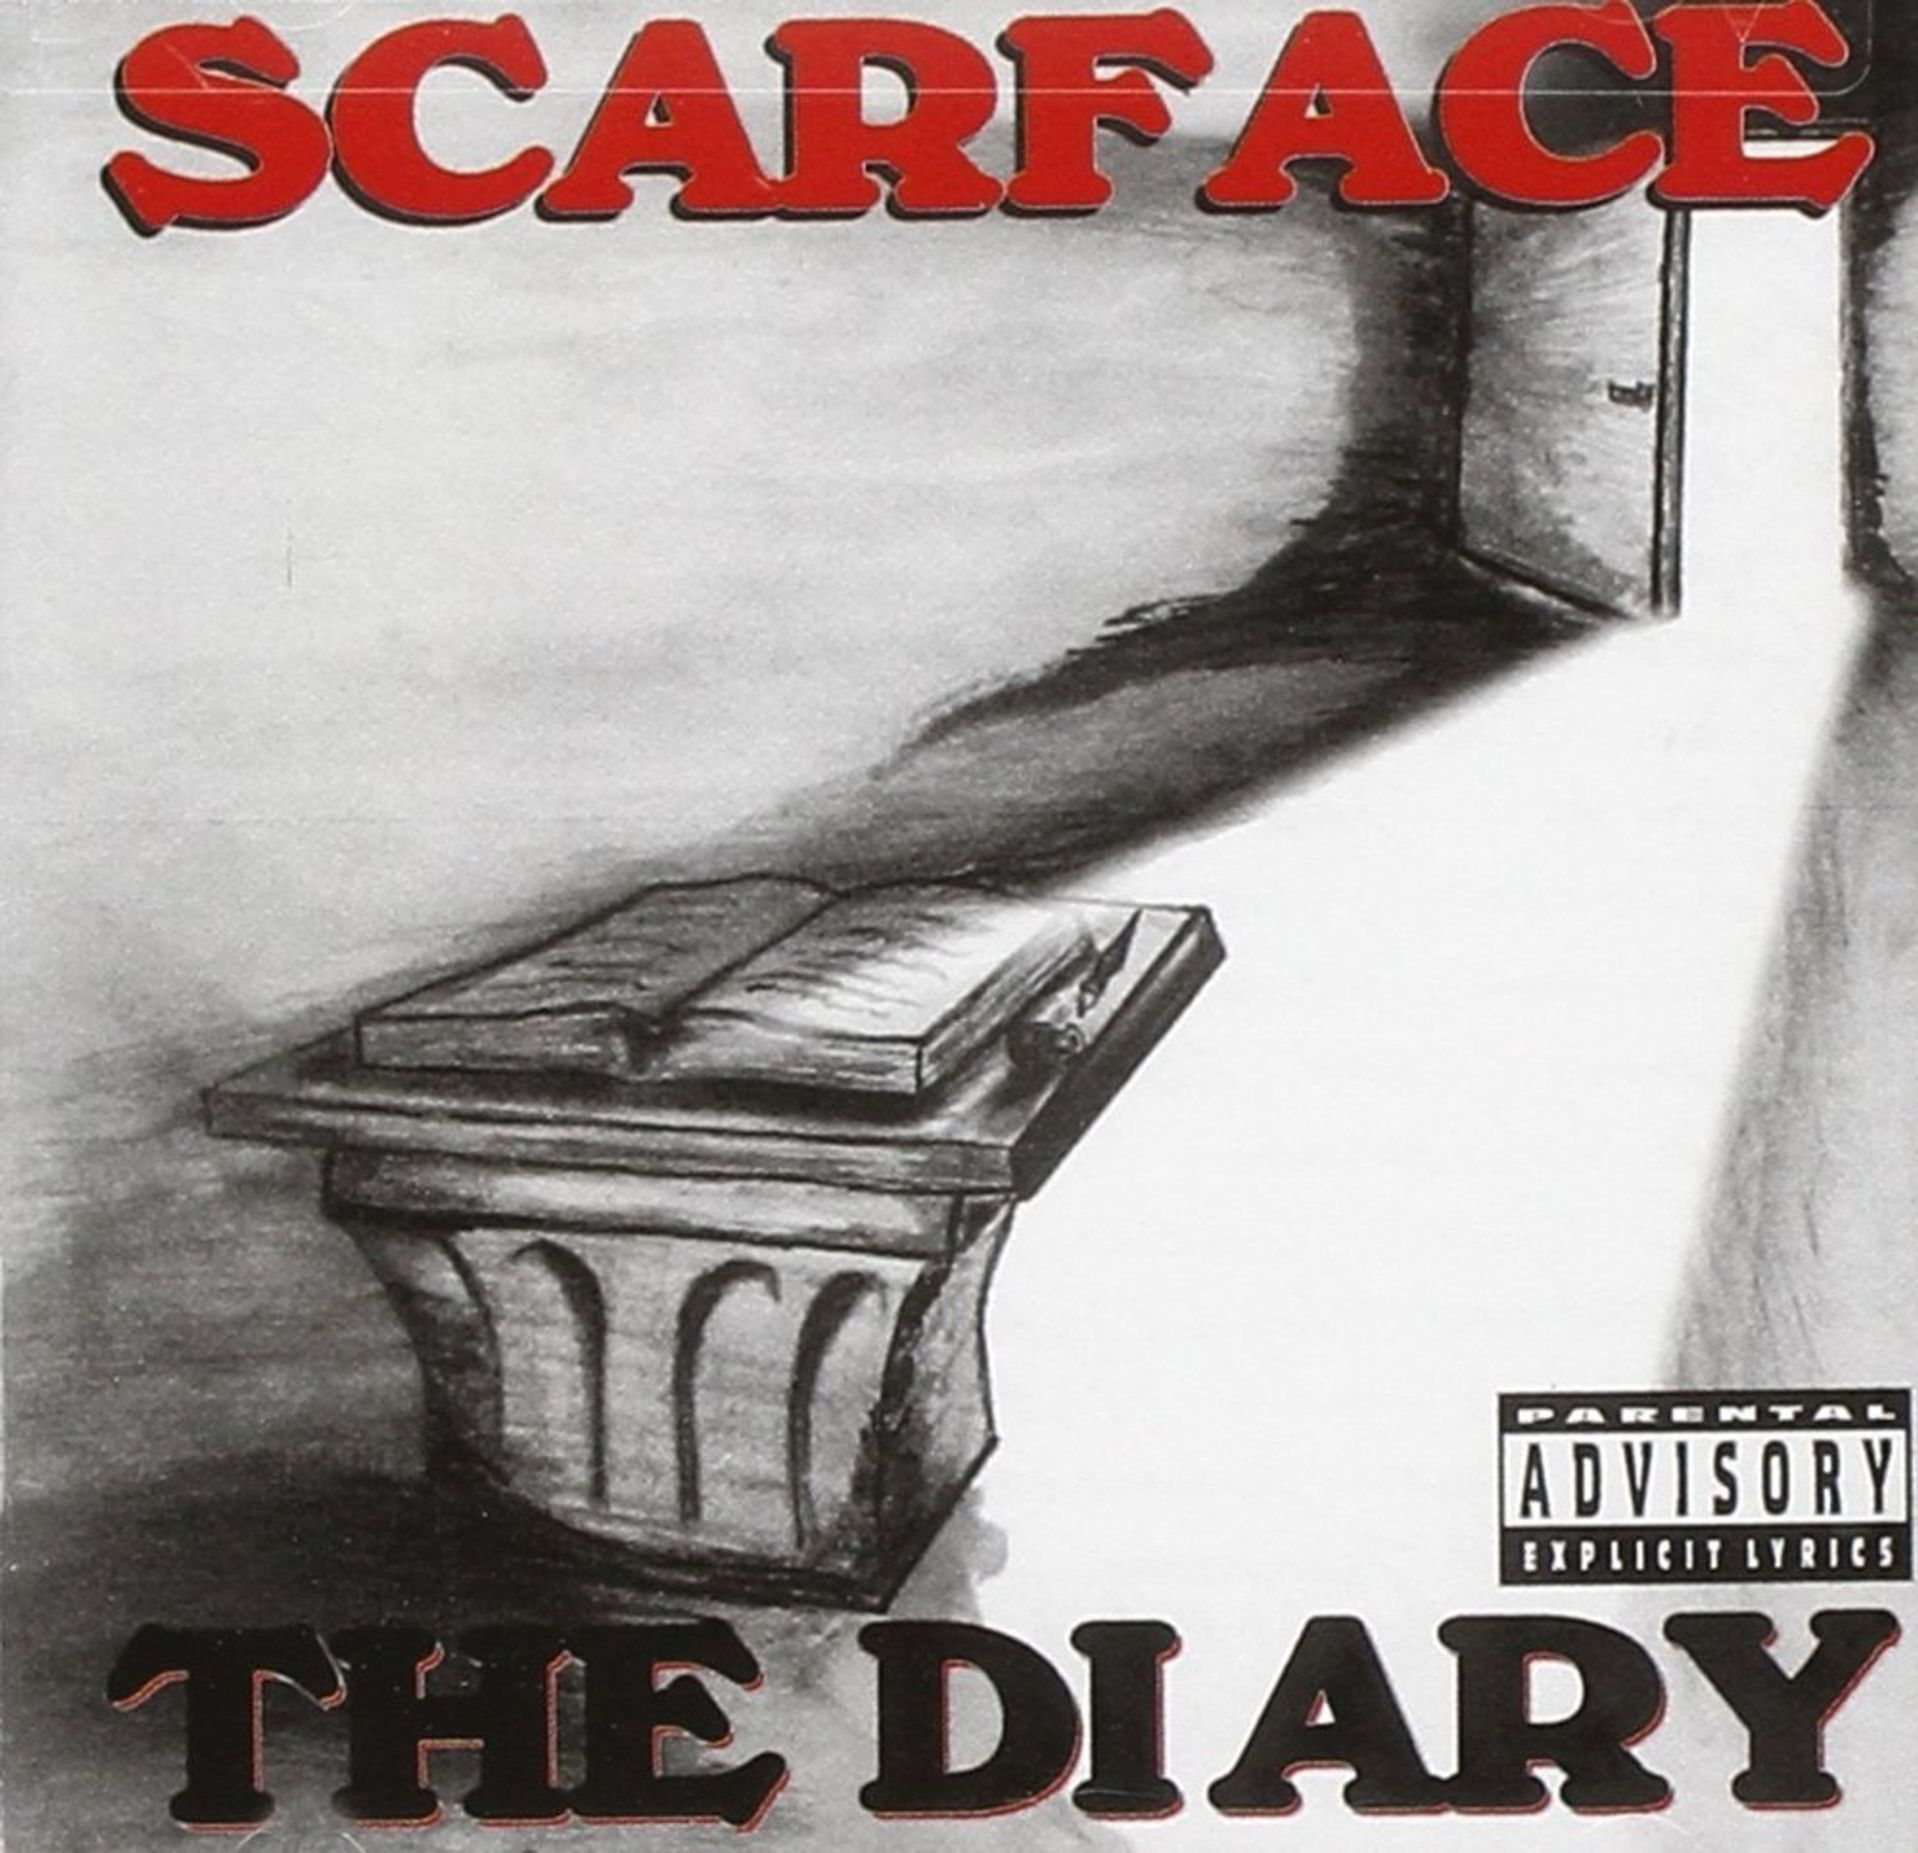 Album Title: The Diary by: Scarface